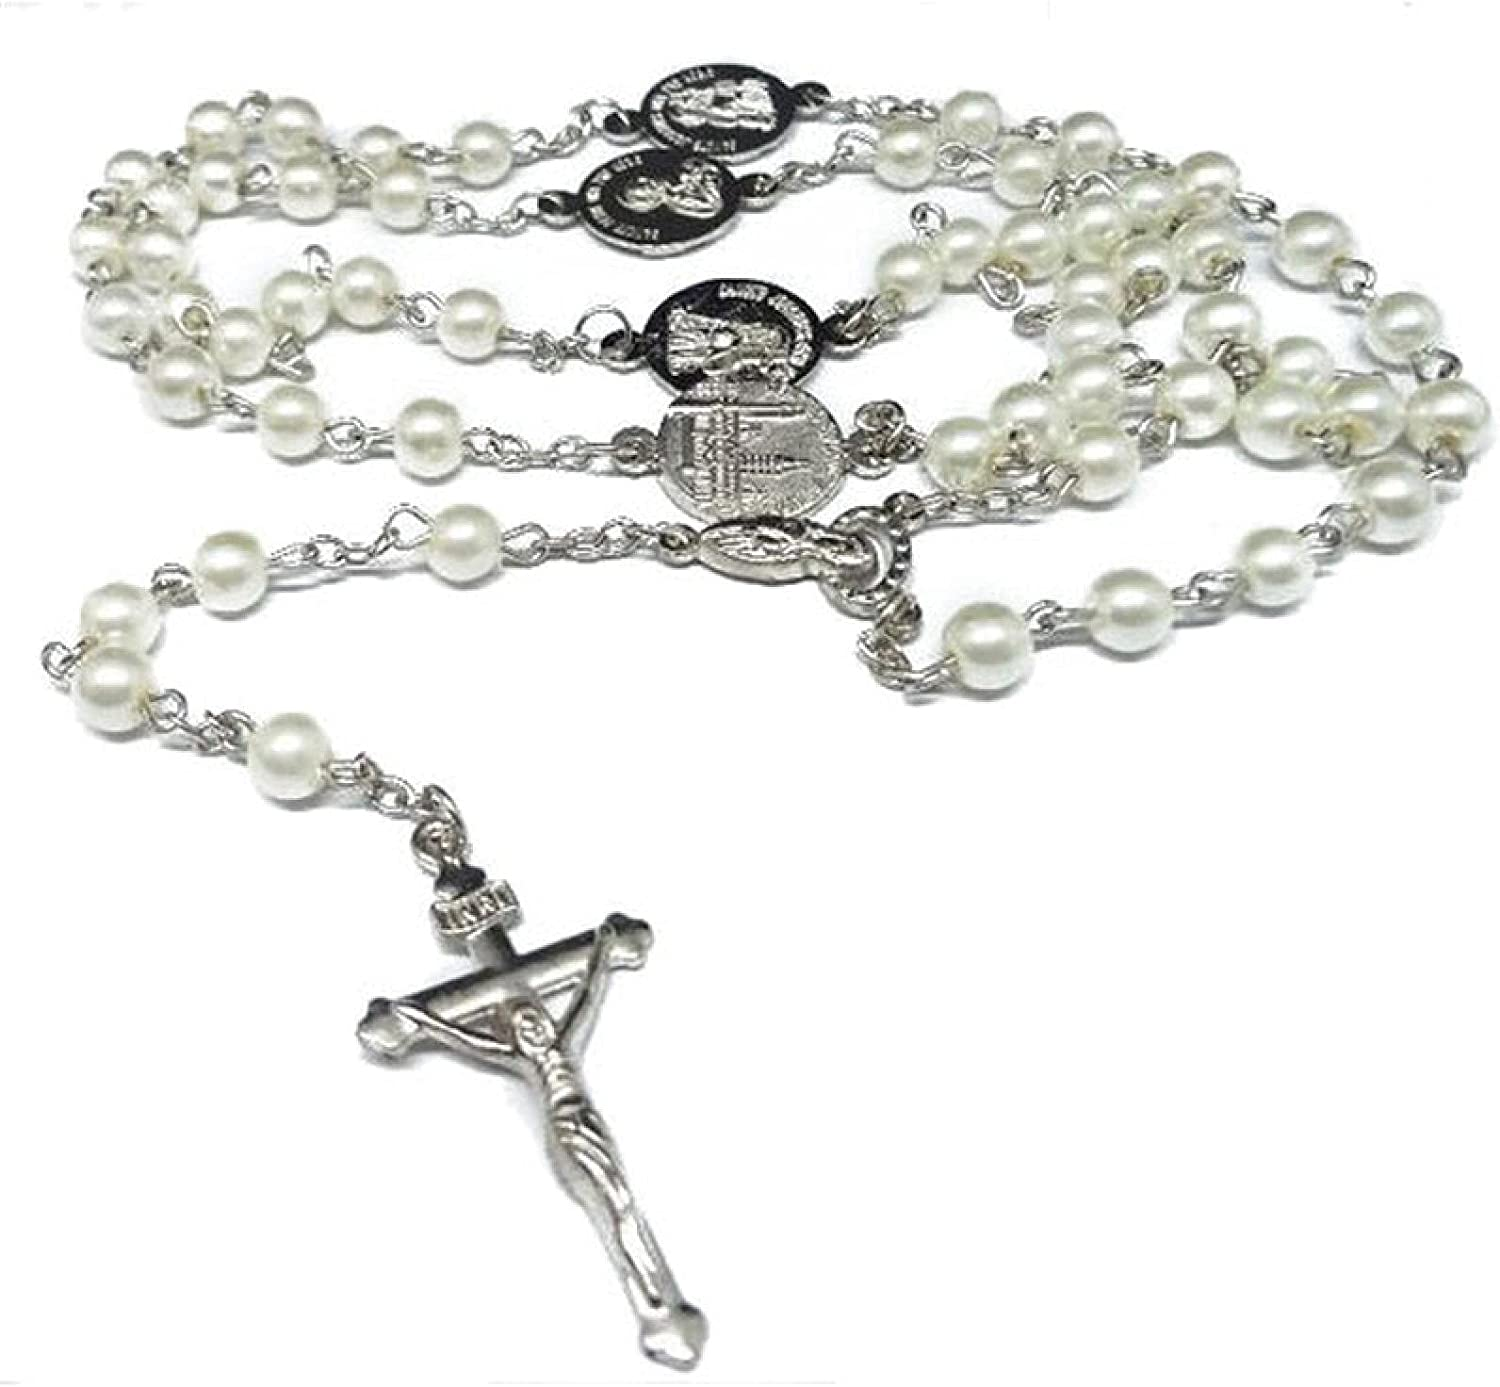 Catholic Rosary Necklace Small Size Round White Pearl Beads Virgin Mary Jesus Jewelry For Women